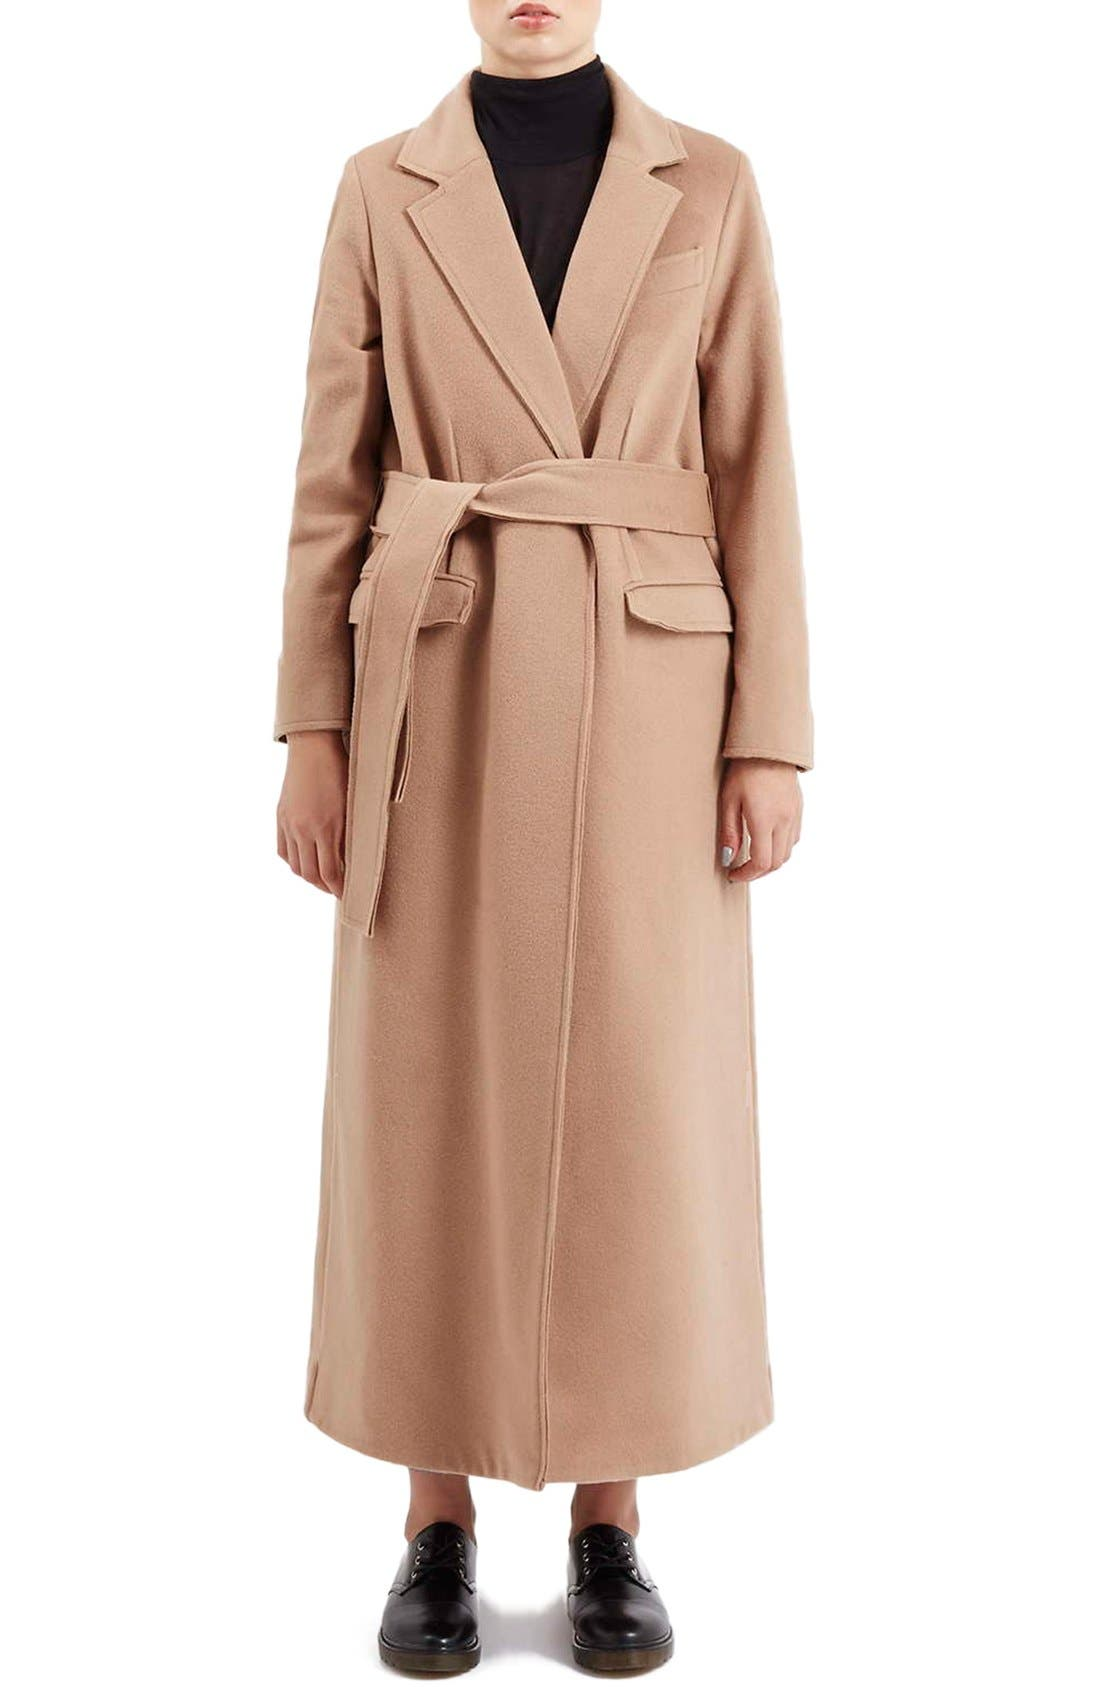 Alternate Image 1 Selected - Topshop Boutique Wrap Coat